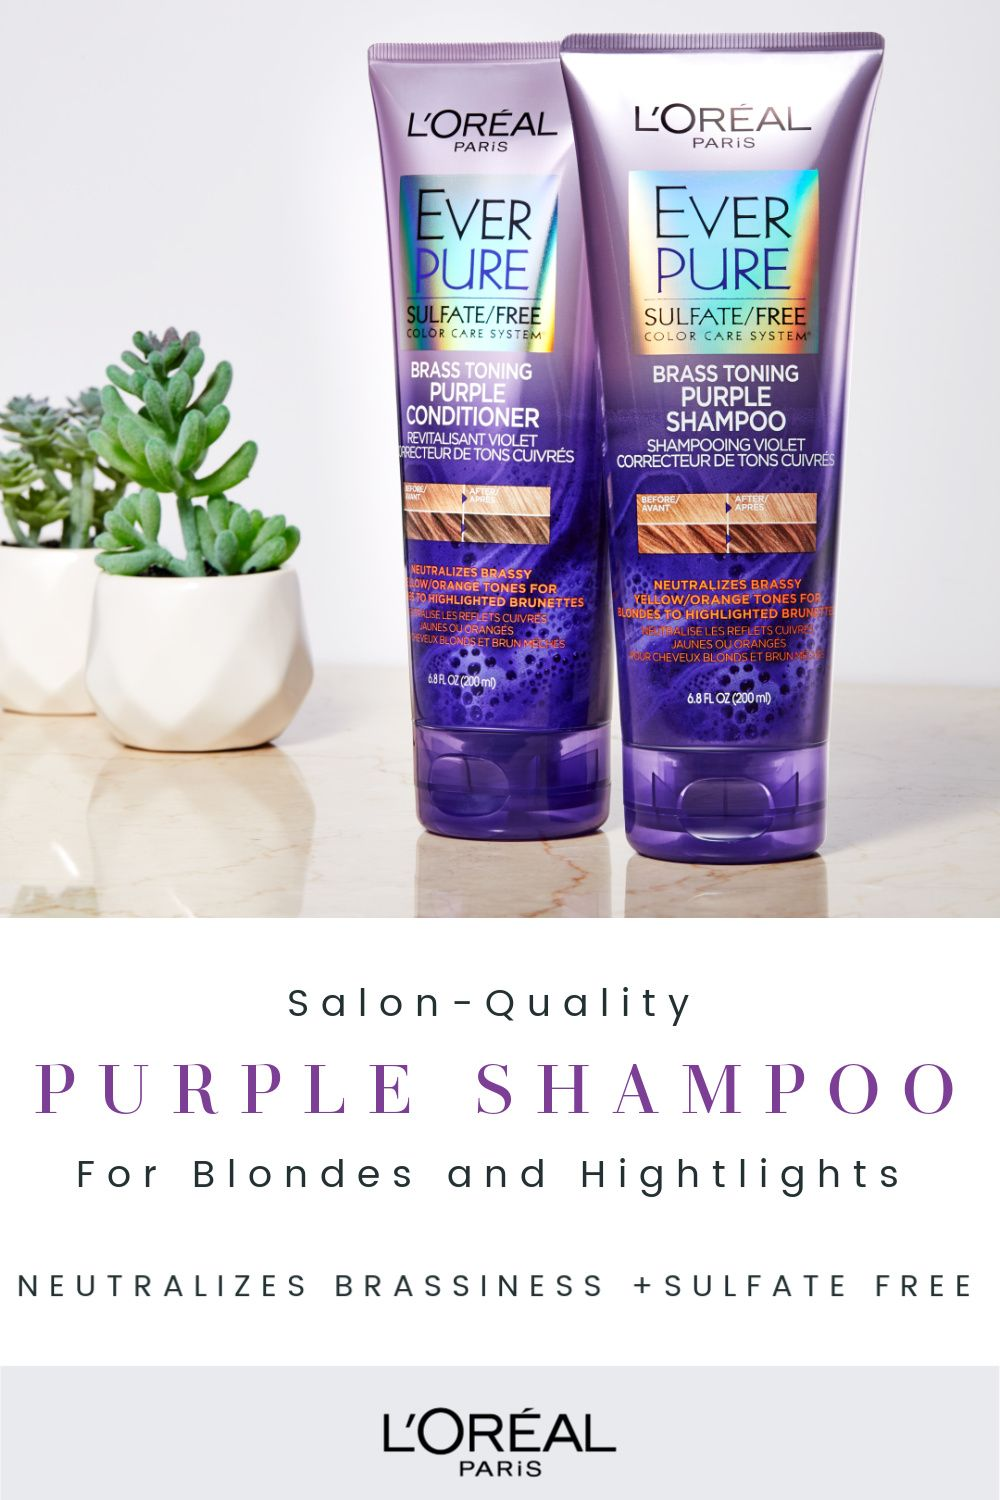 How To Maintain Blonde Hair Color Purple Shampoo For Blondes Brown And Silver Hair Brown Hair With Highlights